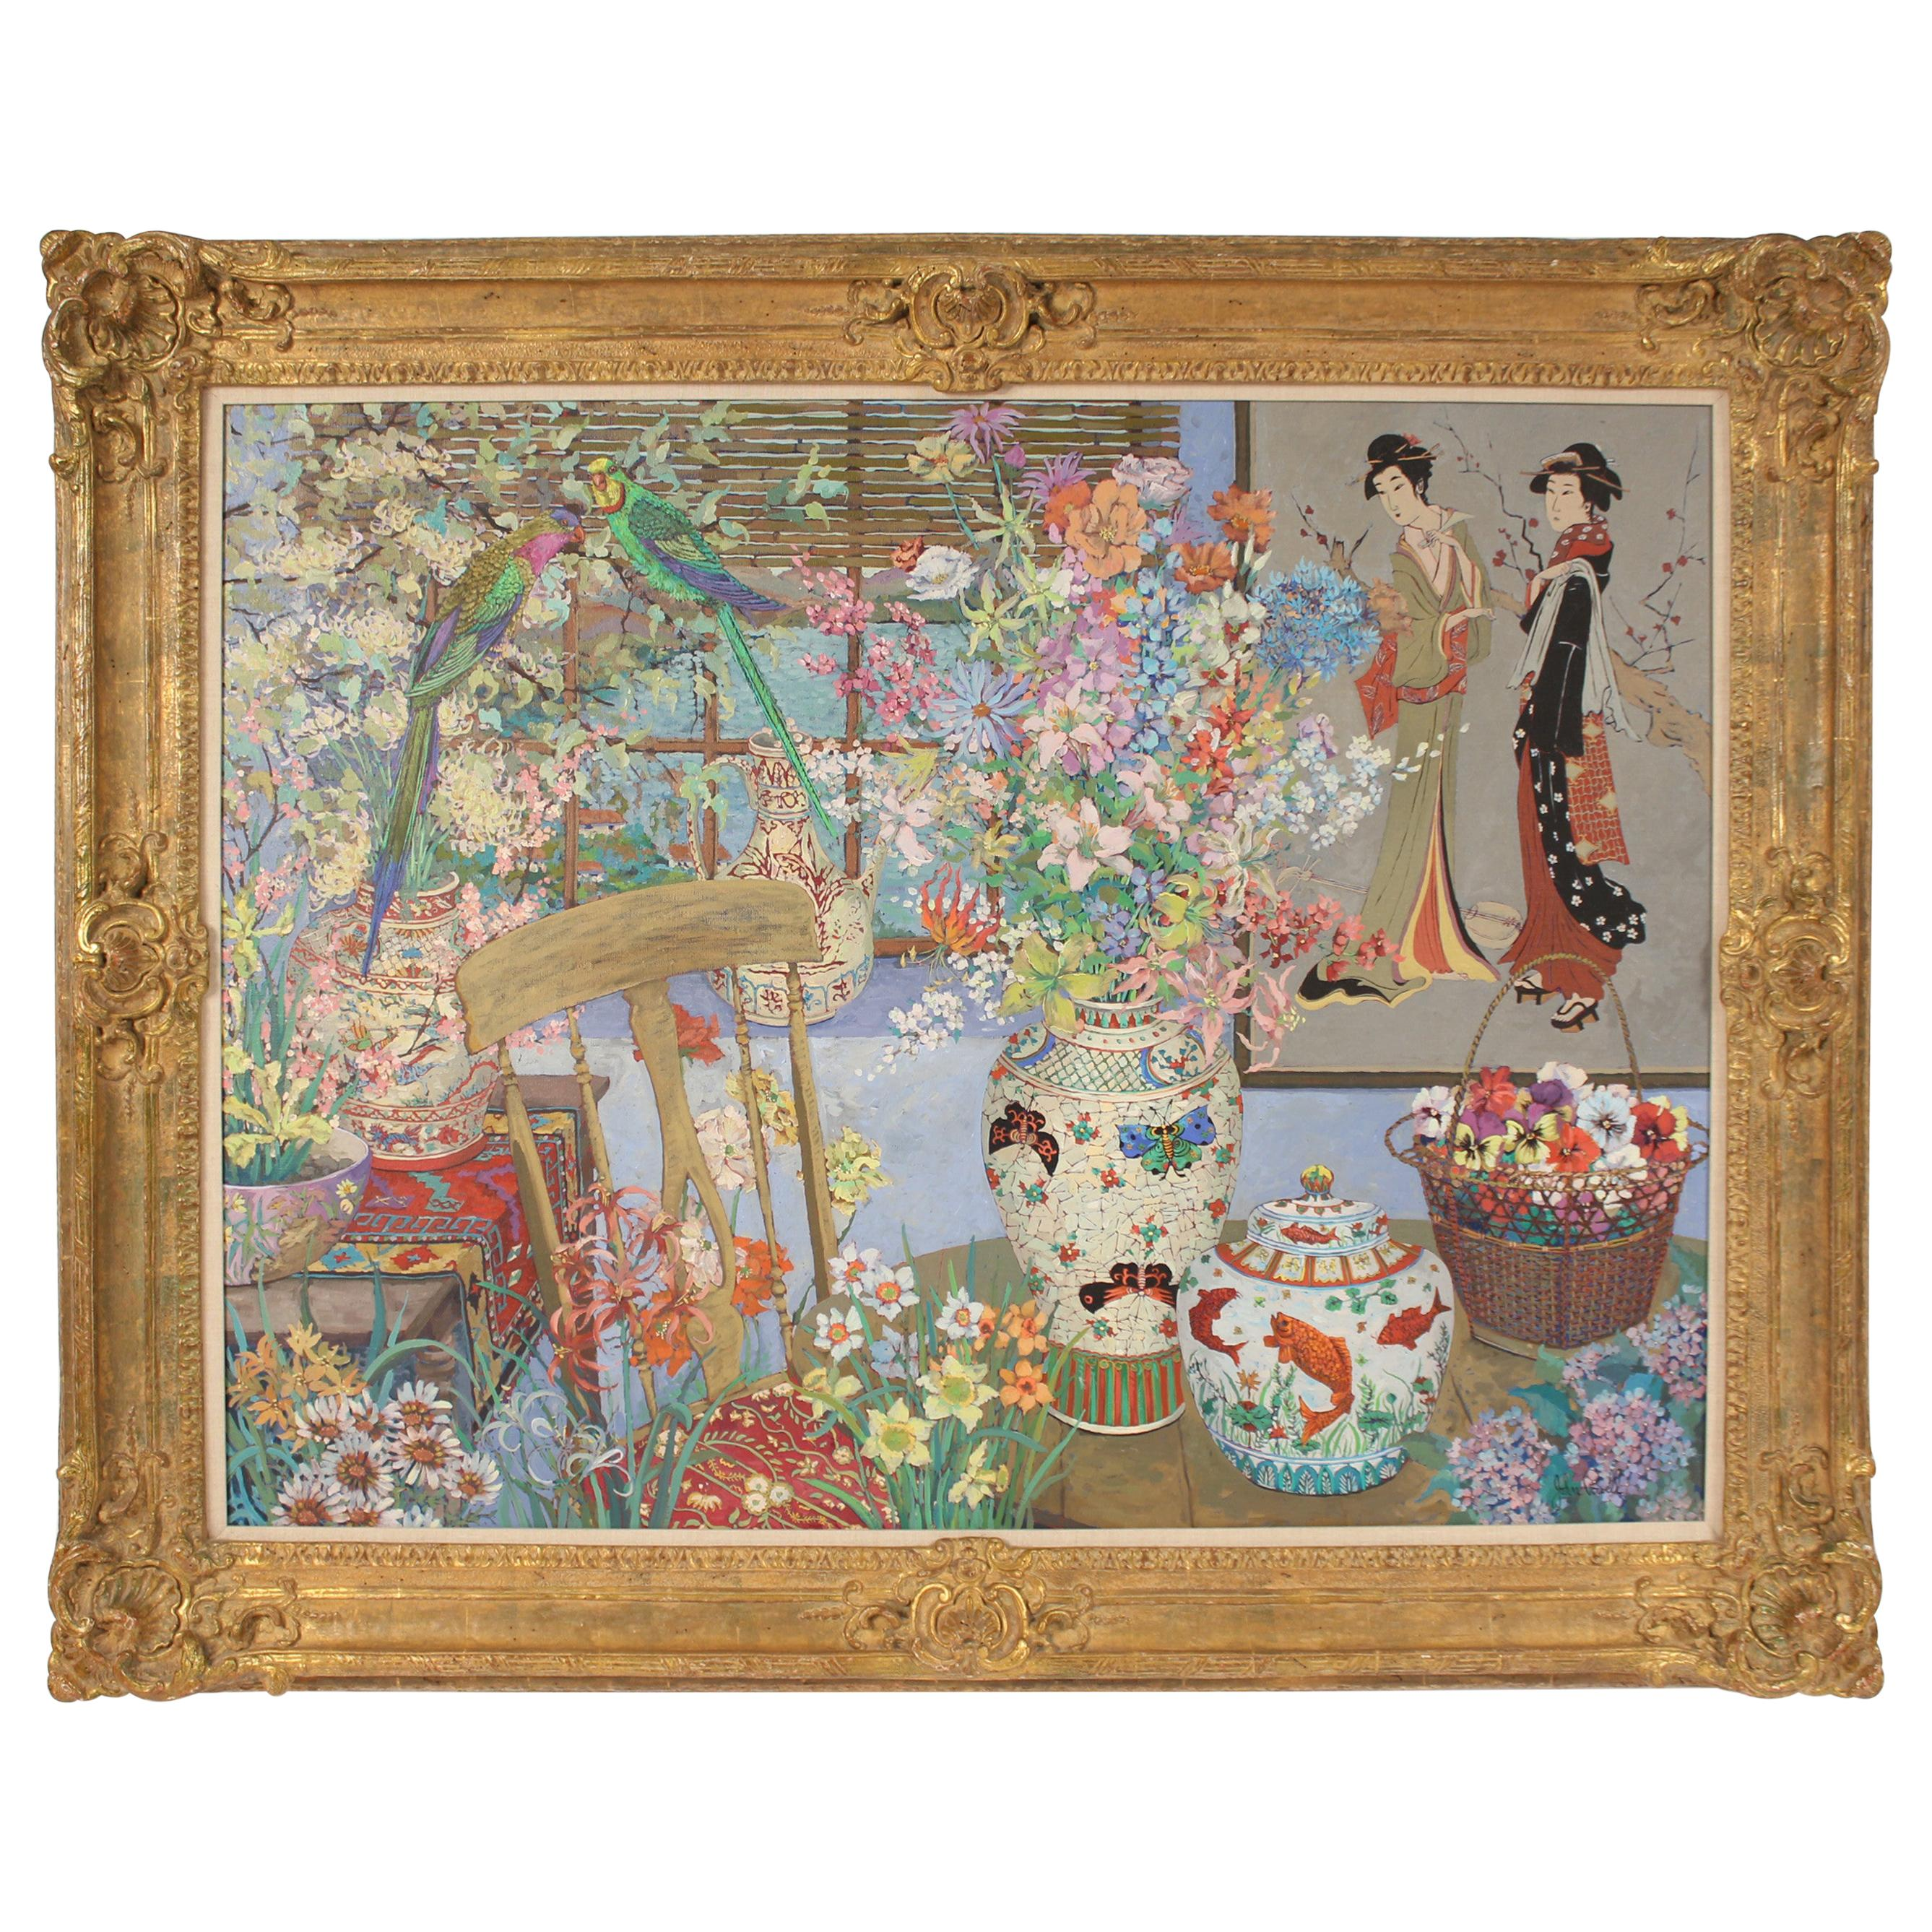 Chinoiserie Still Life Painting by John Powell